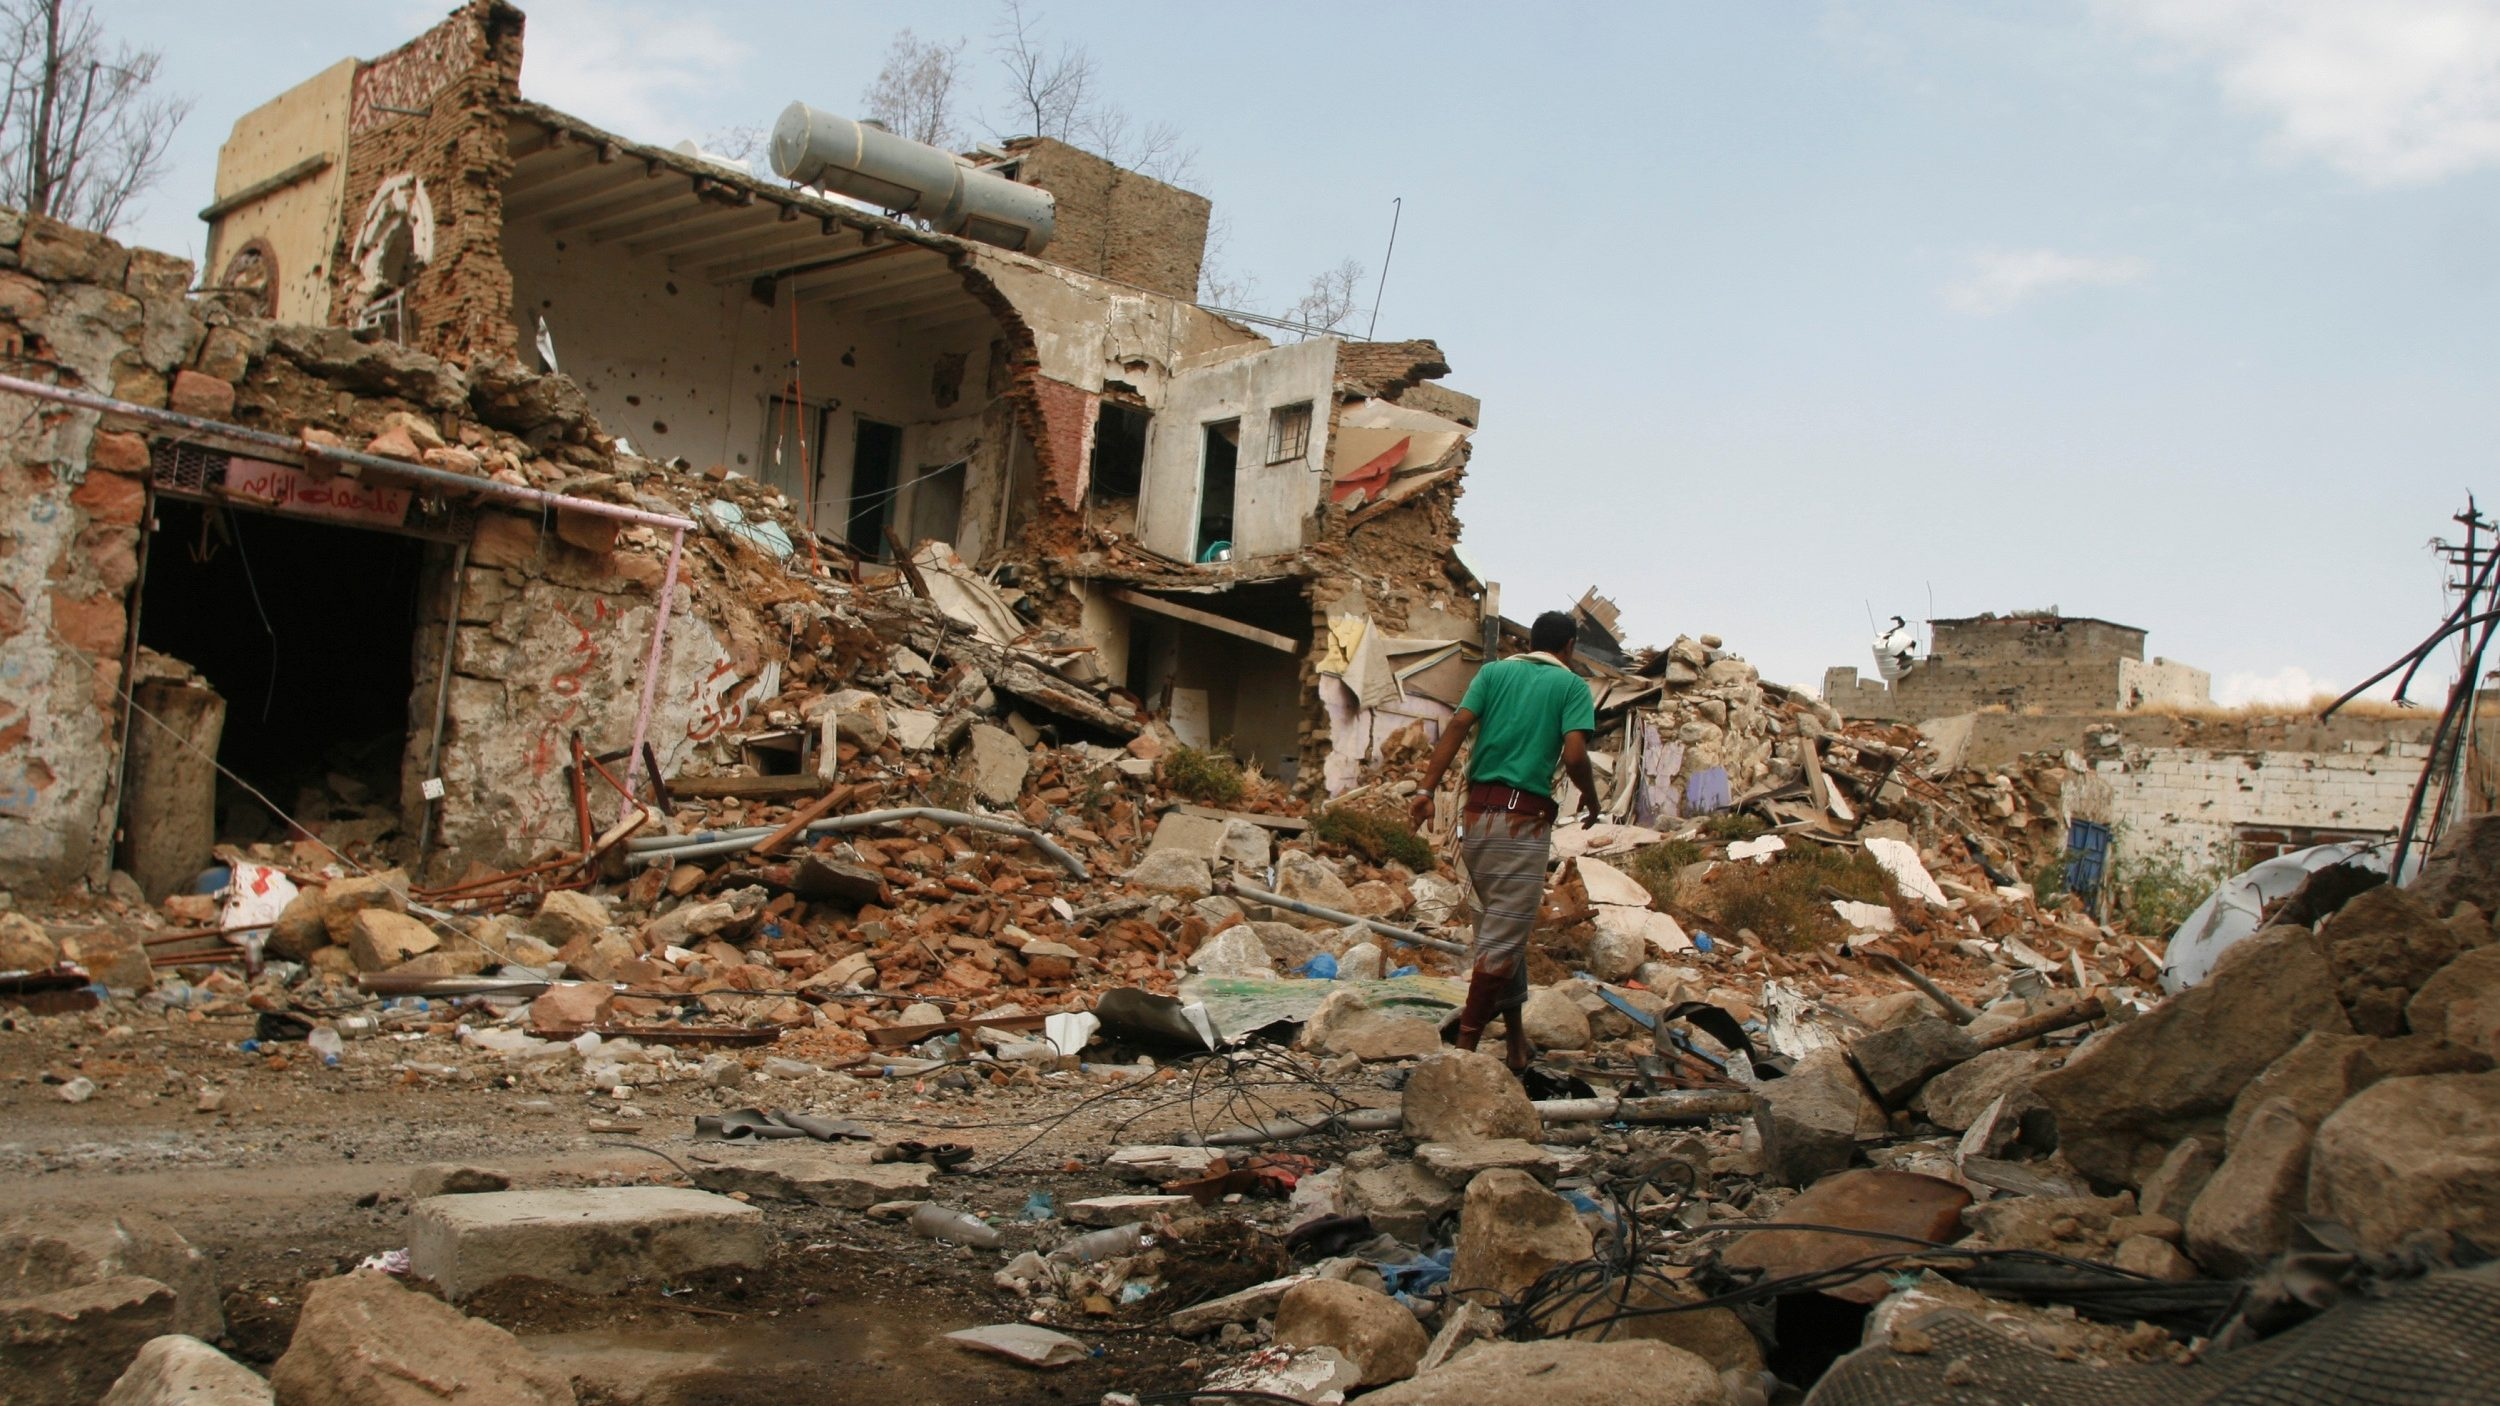 A man walks by a destroyed house